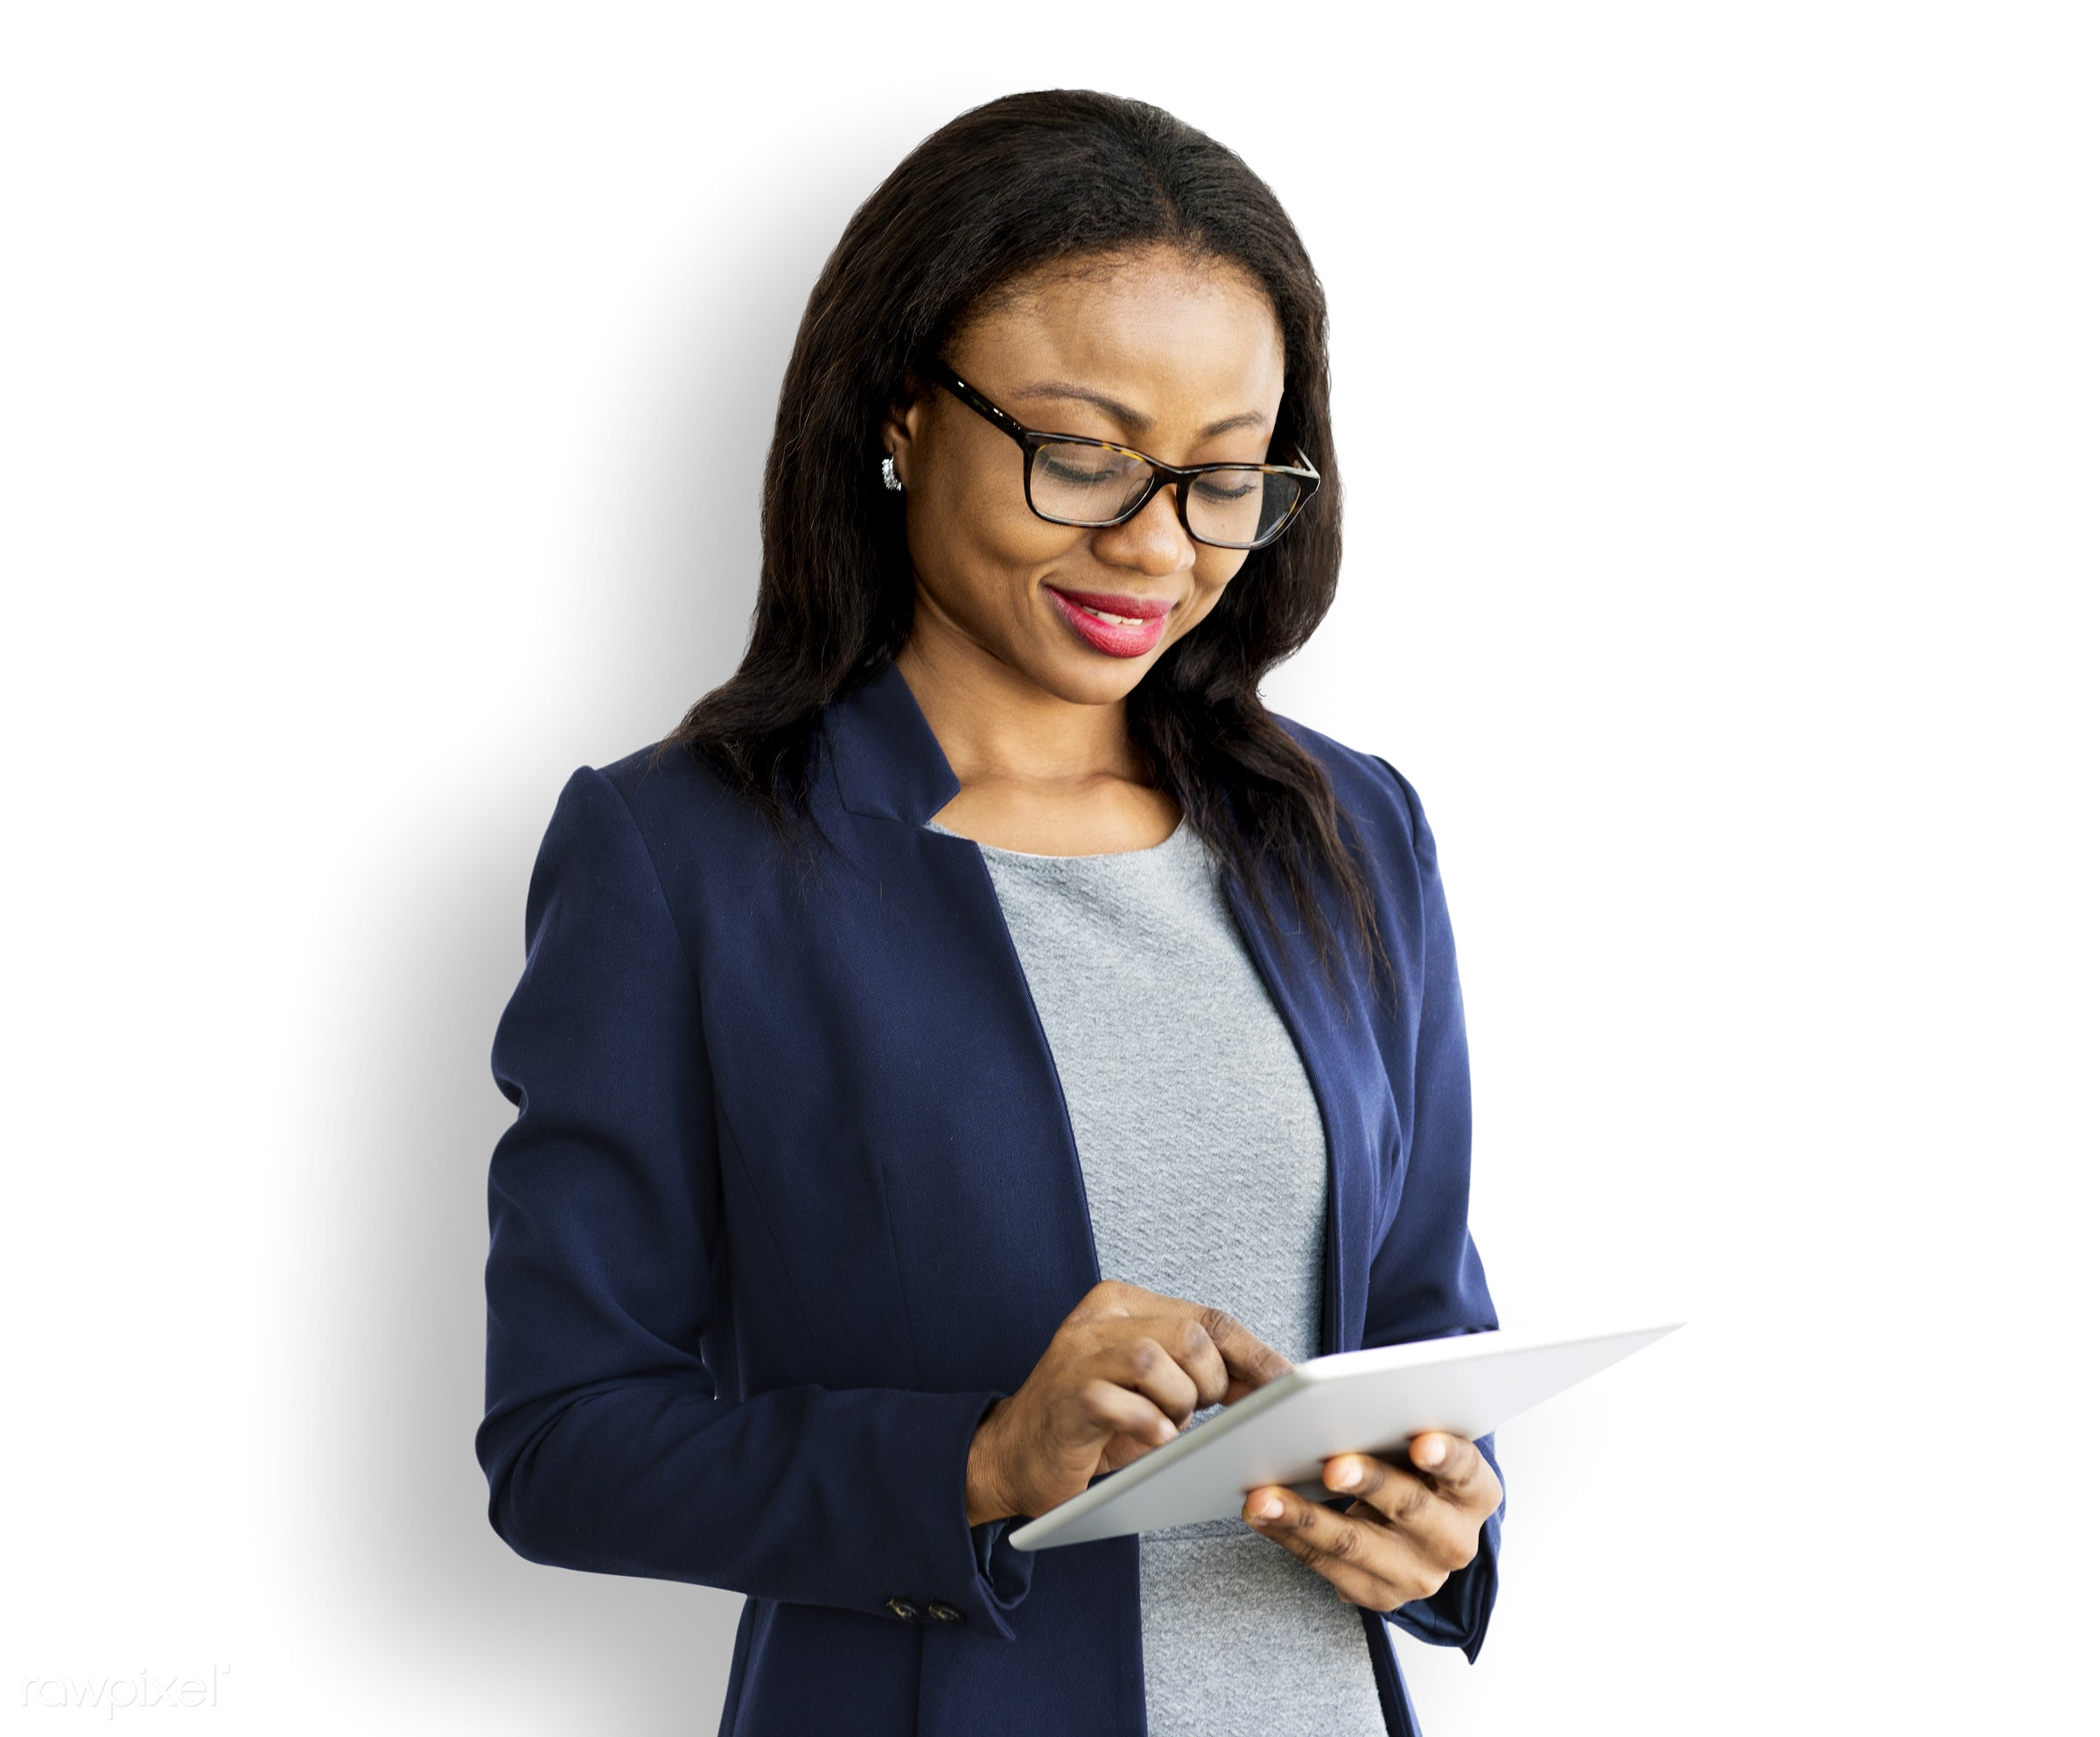 manager, technology, development, corporation, business, digital tablet, woman, report, commercial, networking, isolated,...